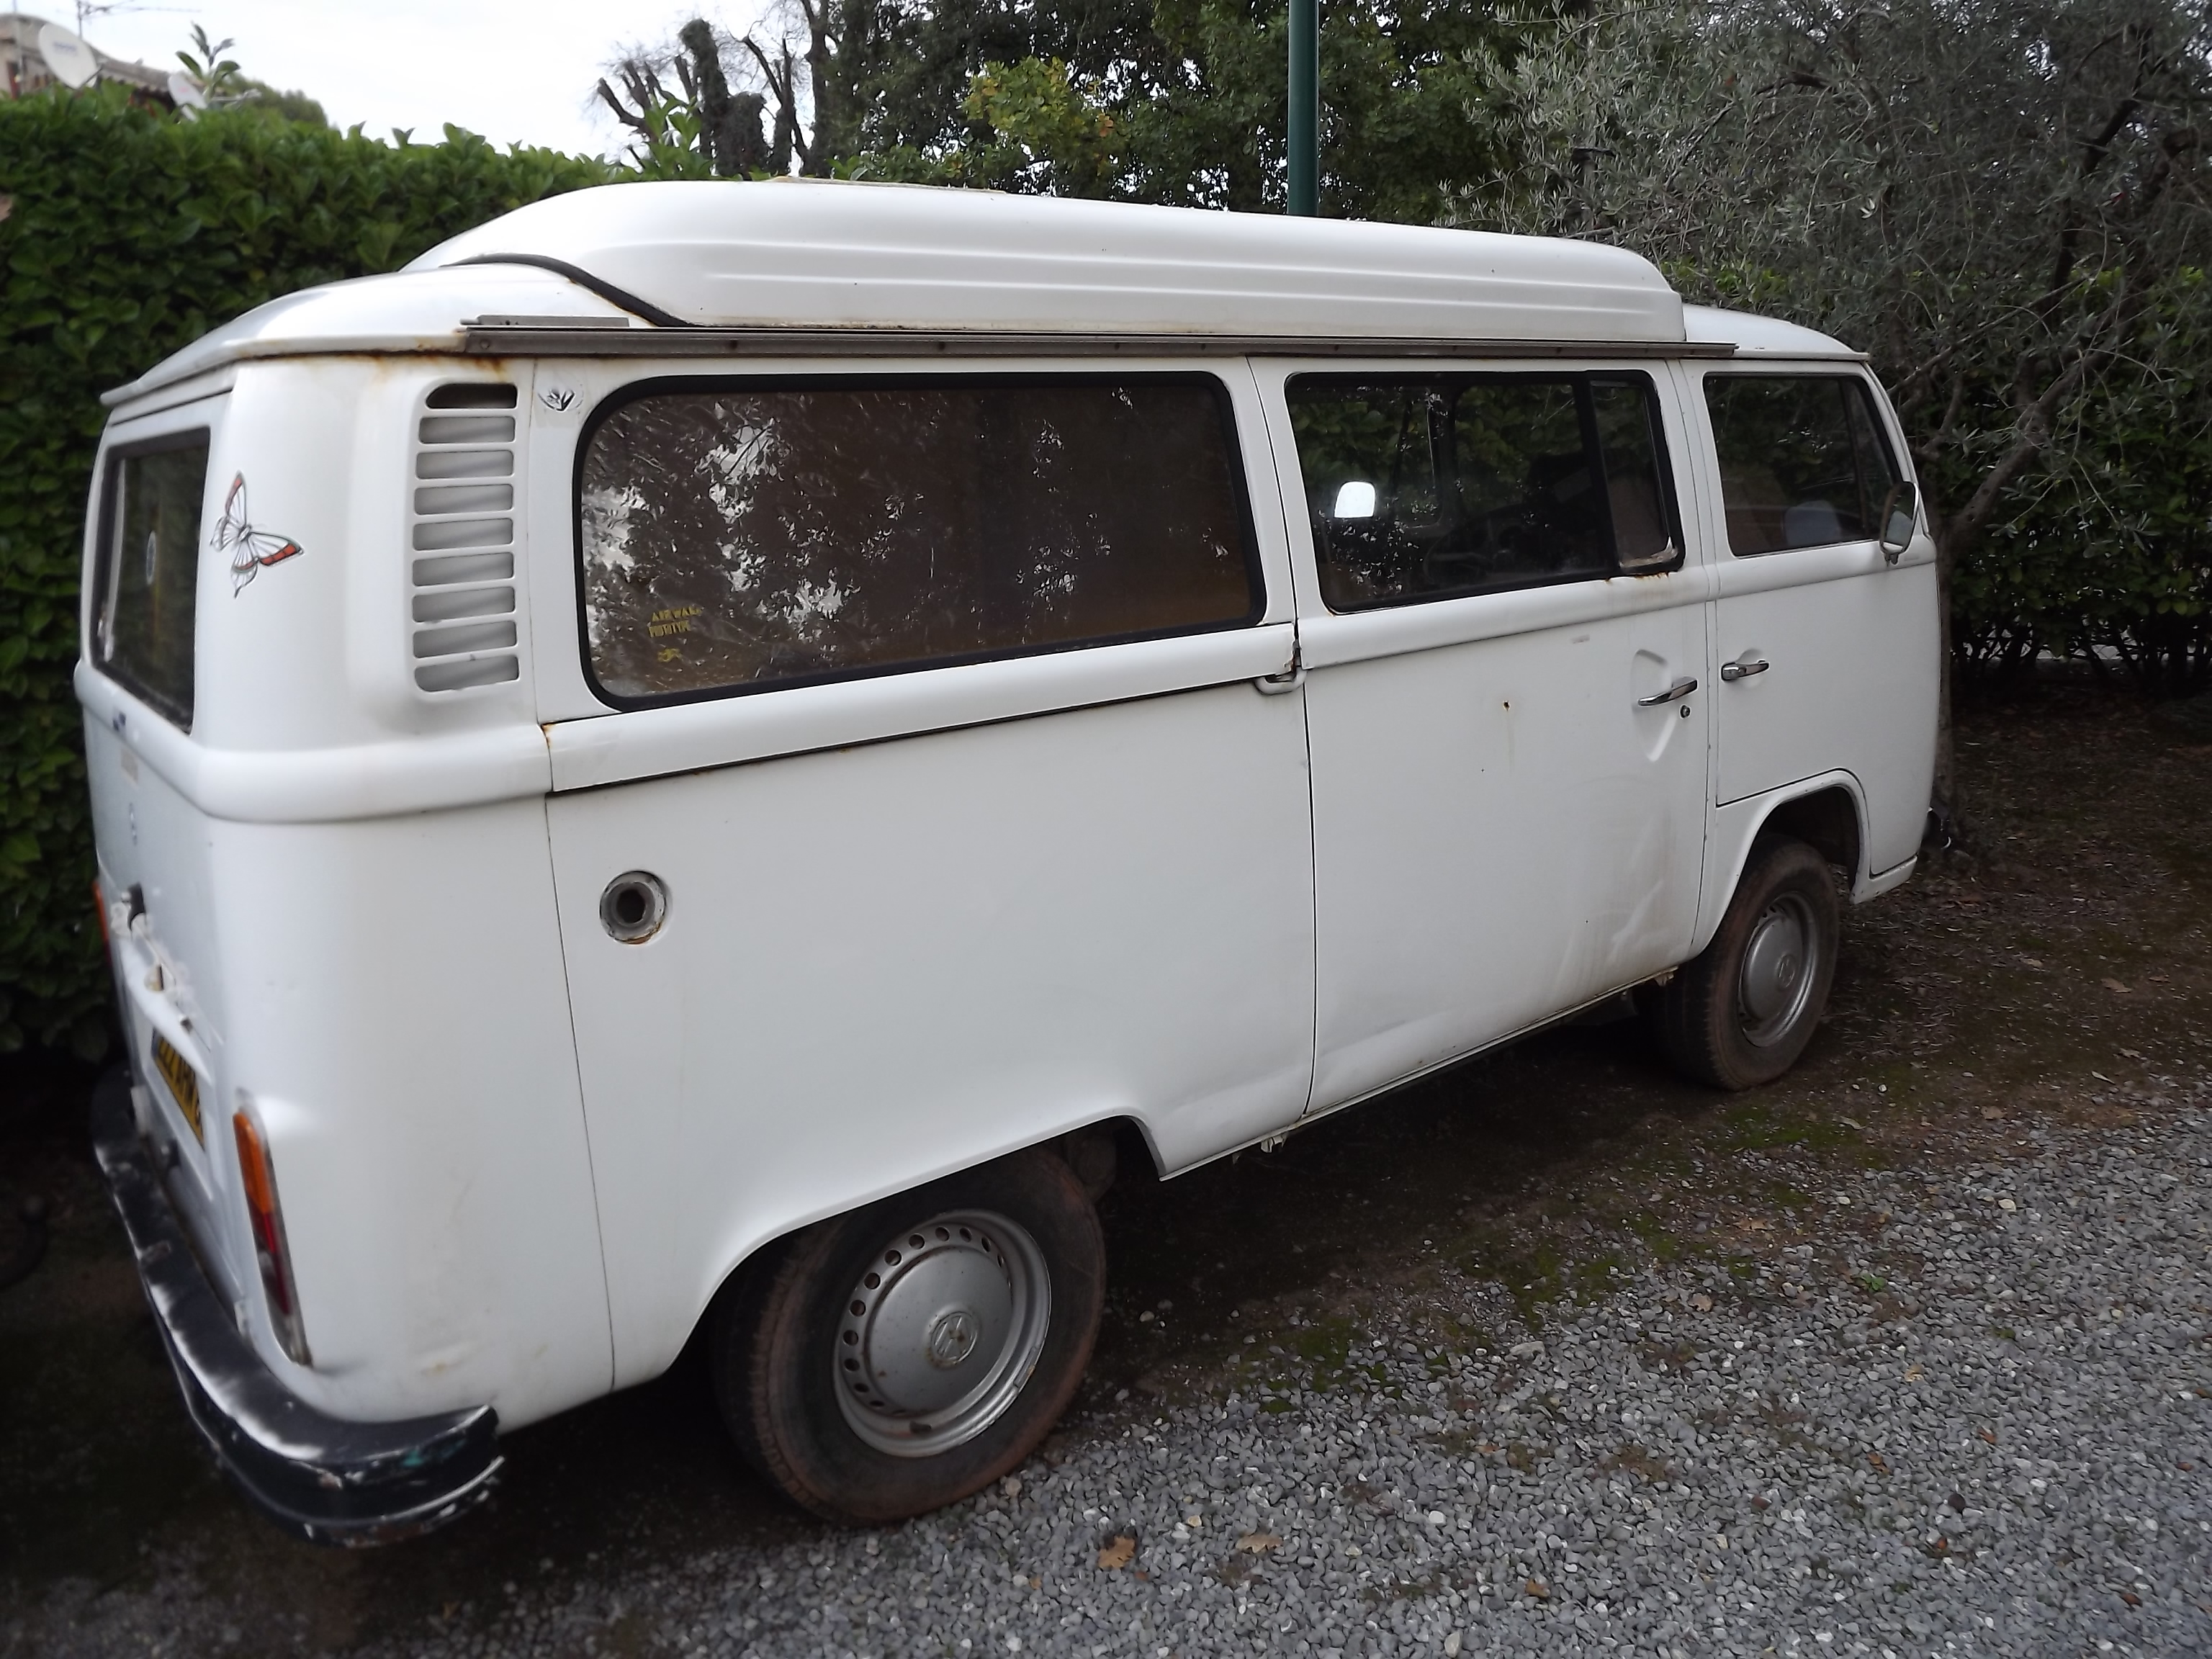 nouveau combi vw bay windows